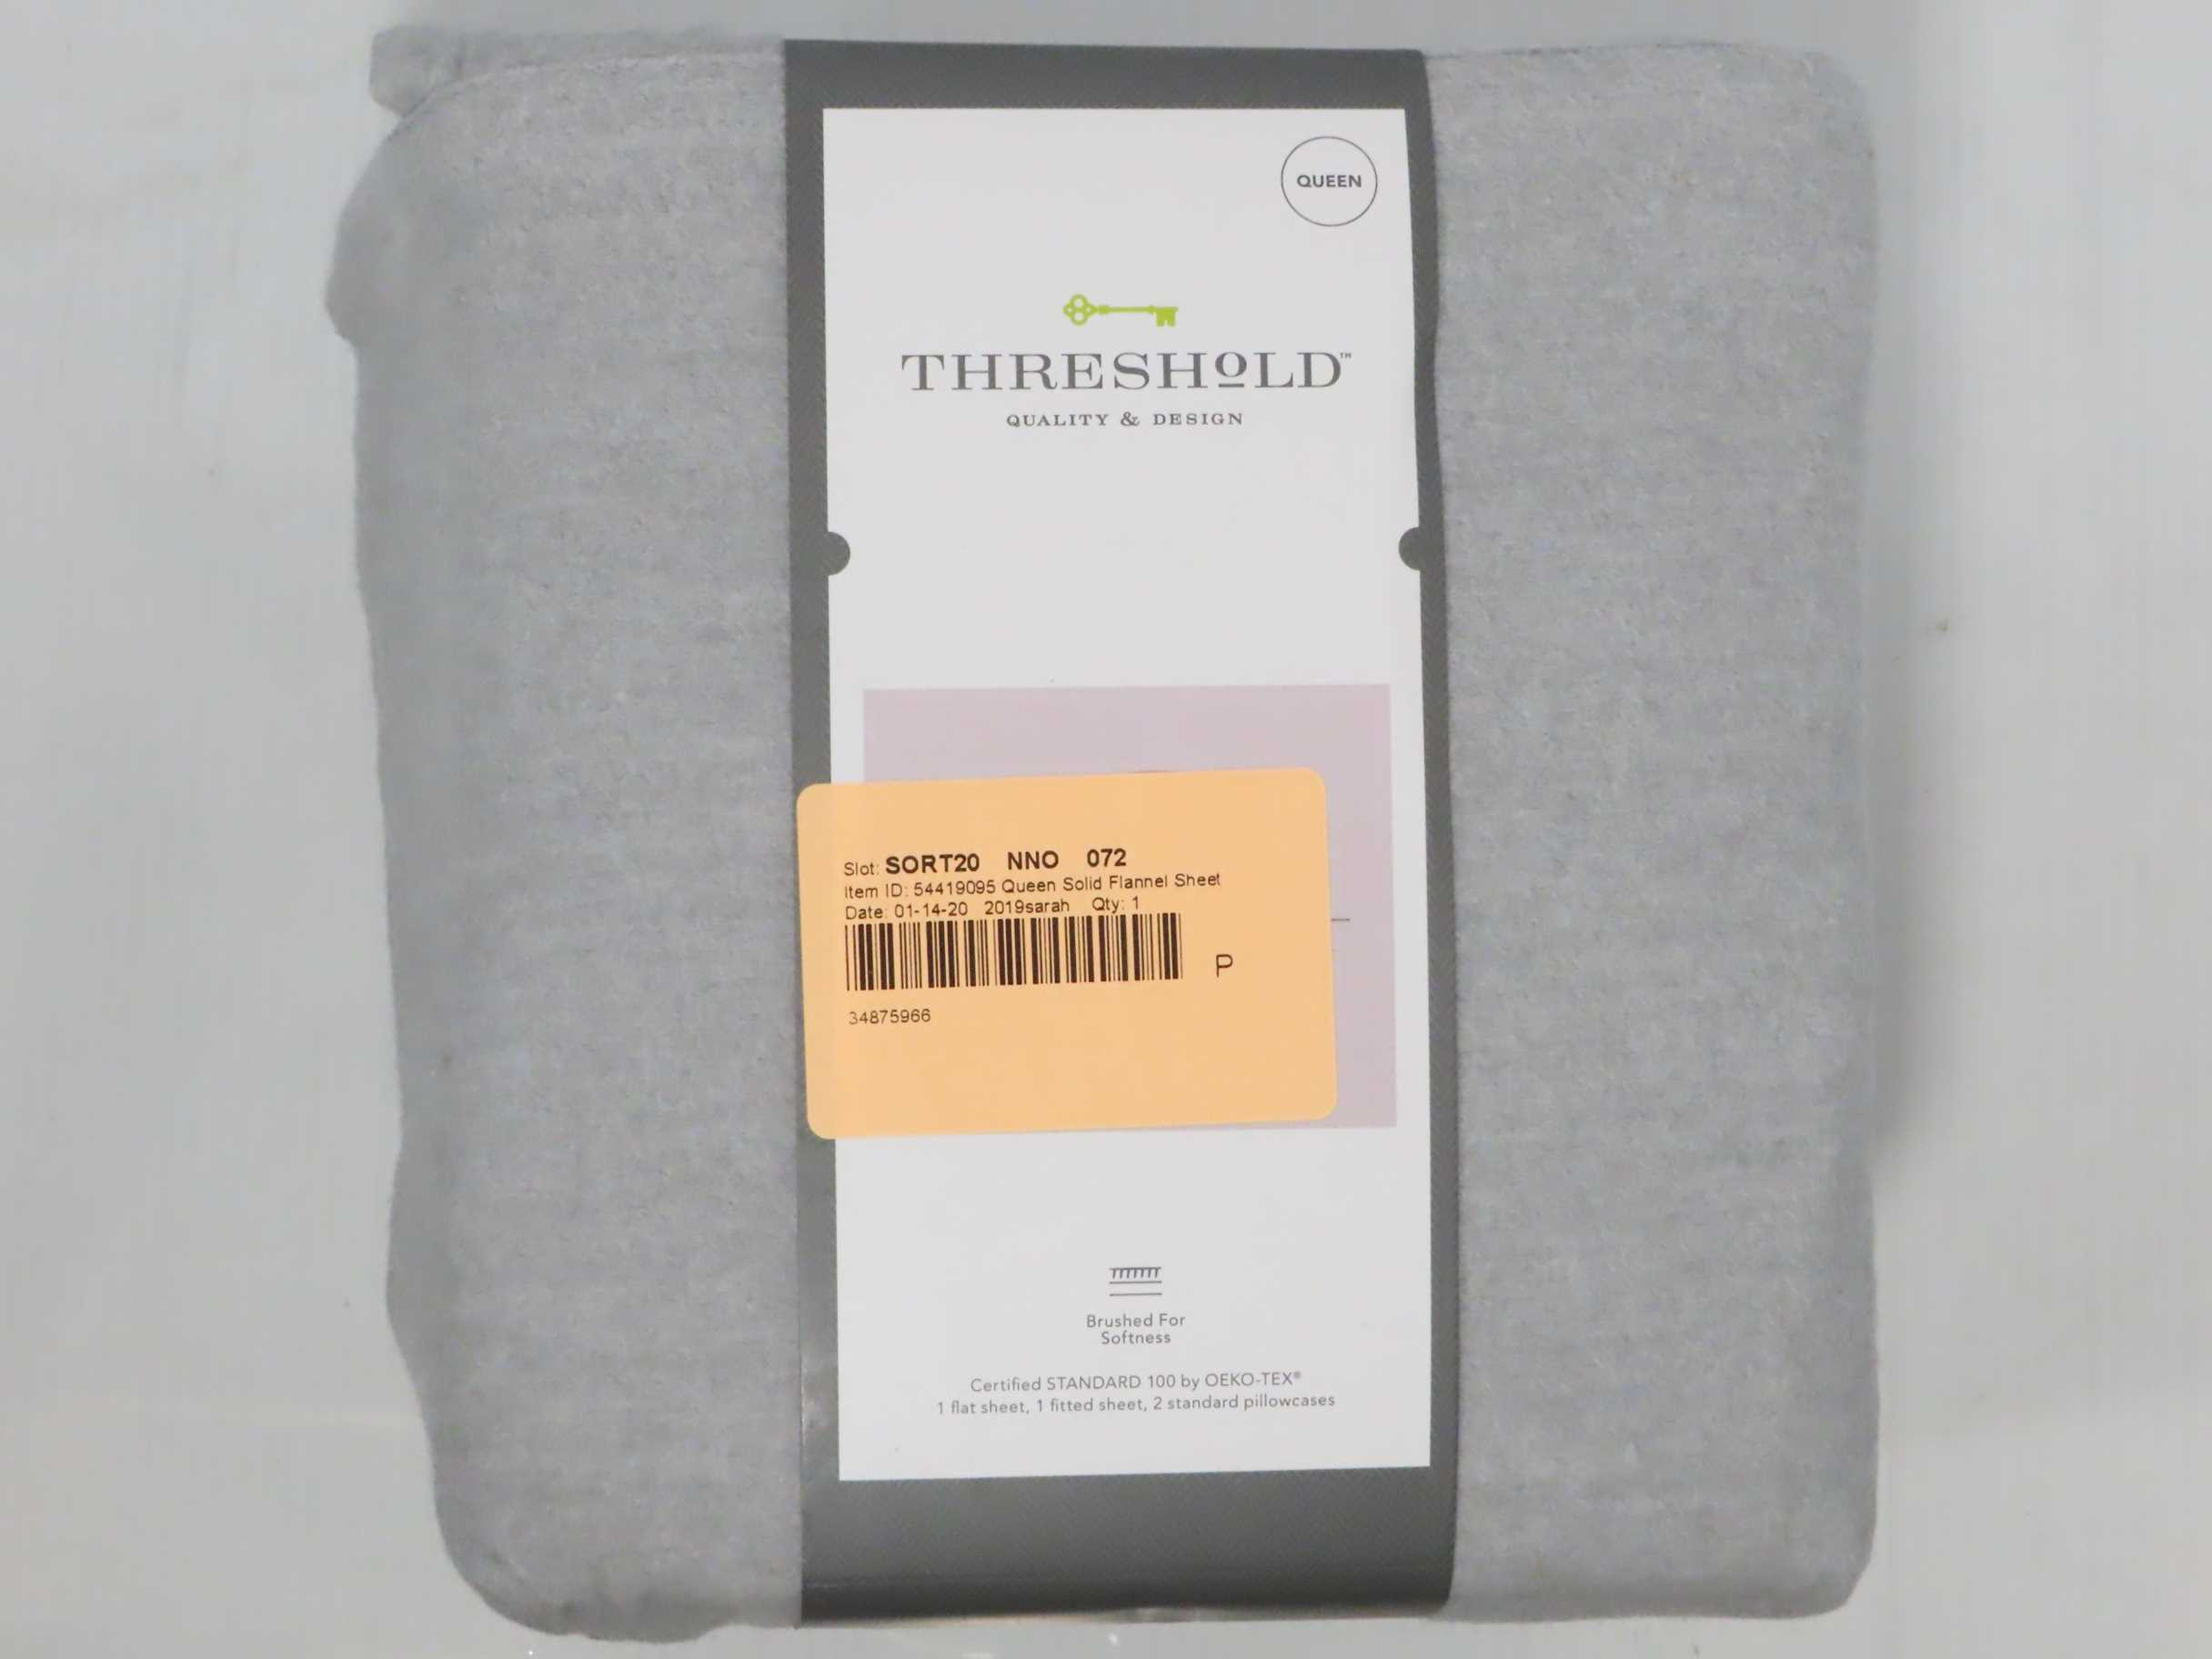 Threshold Queen Size Flannel Sheet Set Solid Gray Soft Sheets and 2 Pillowcases